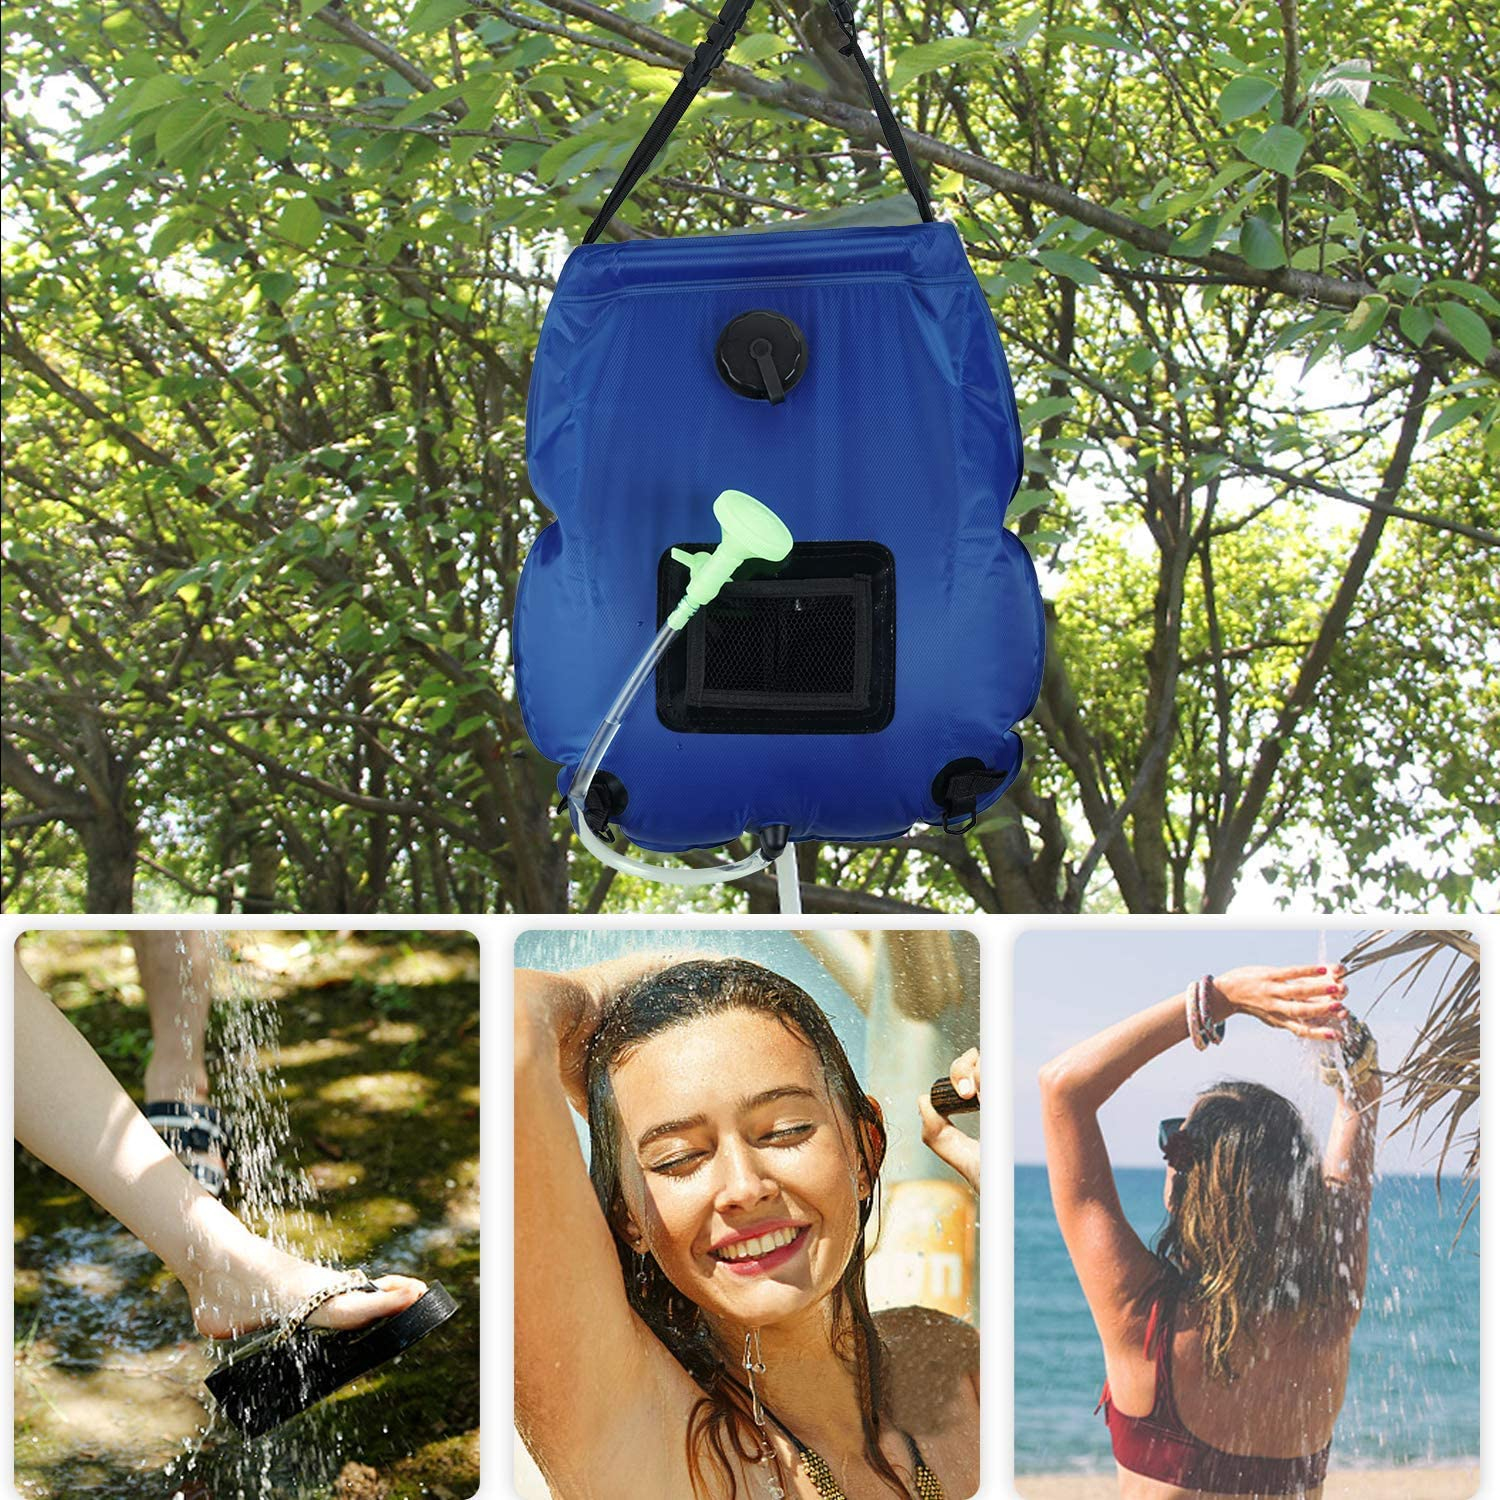 kingbros Solar Camping Shower Bag for Camping 5 Gallons//20L Summer Shower Bag with Removable Hose and On-Off Switchable Shower Head Portable Shower for Camping Outdoor Traveling Hiking